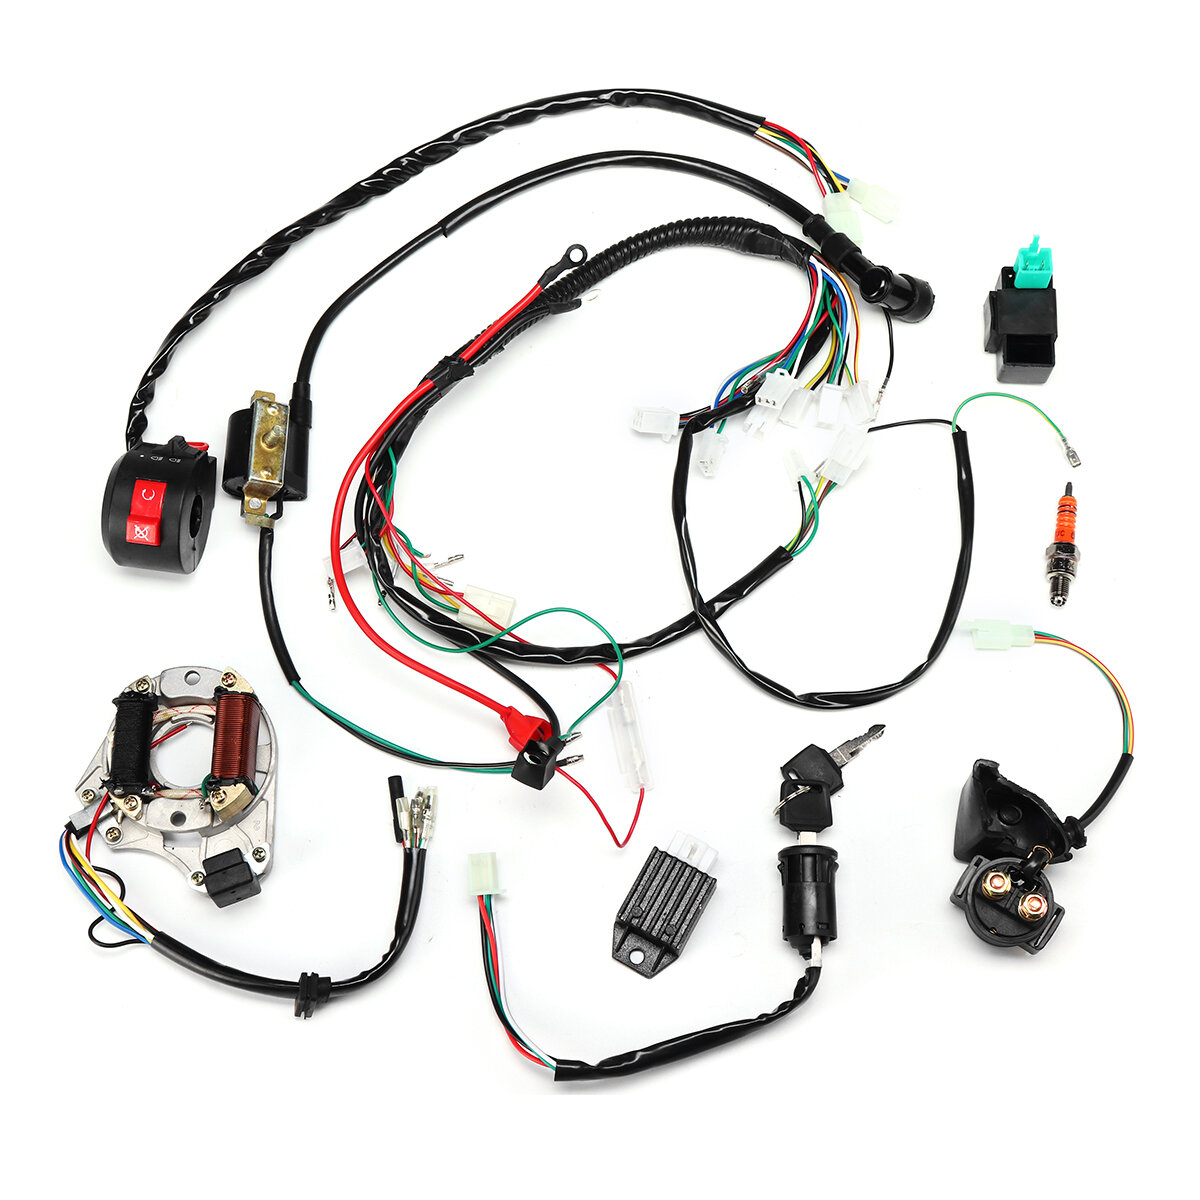 50cc 70cc 90cc 110cc Ignition Wiring Harness Kit embly ATV Quad Electric Ignition Wire Harness on